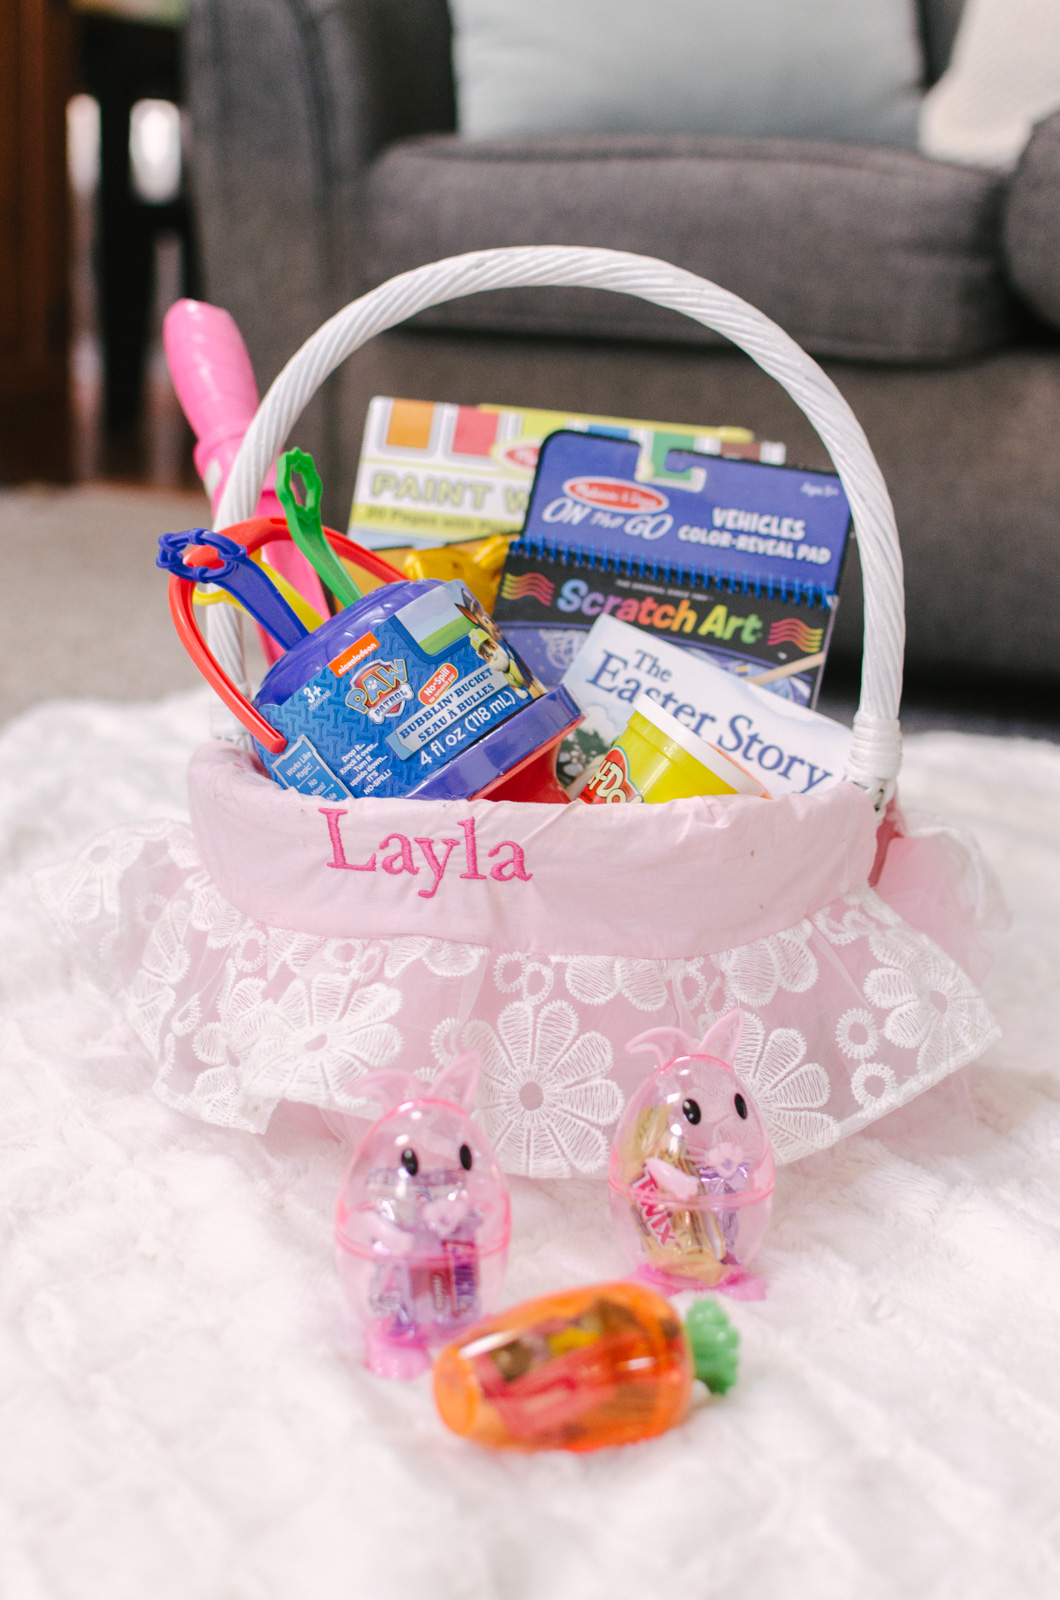 toddler easter basket ideas on amazon prime | bylaurenm.com